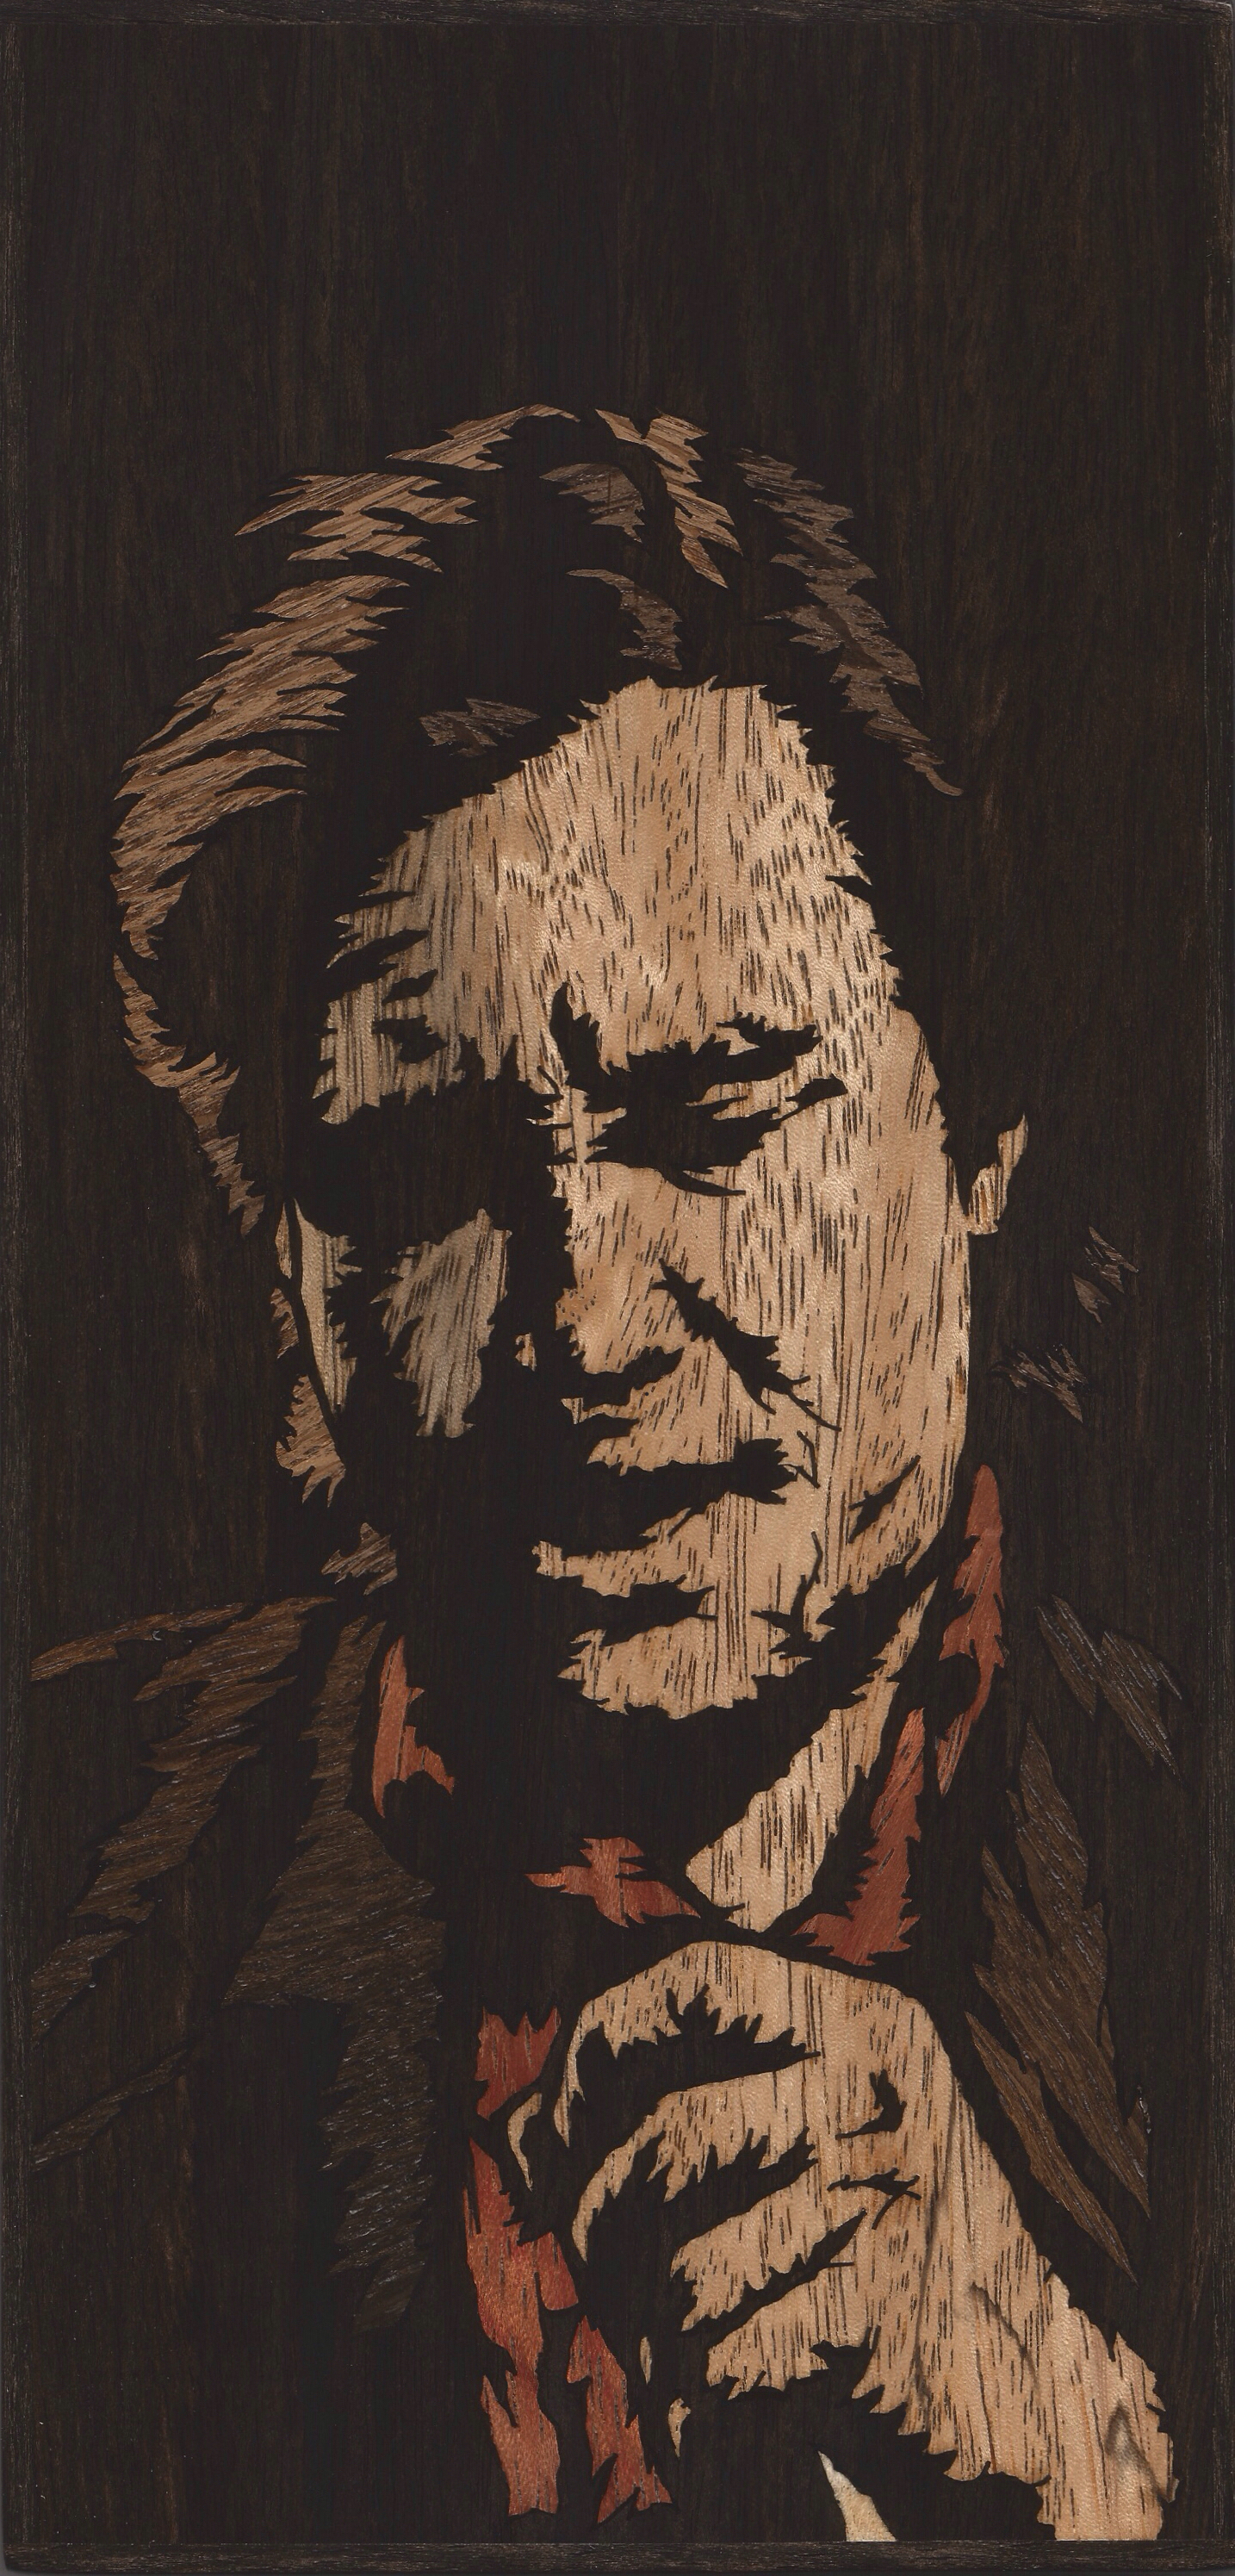 BILL HICKS INLAY